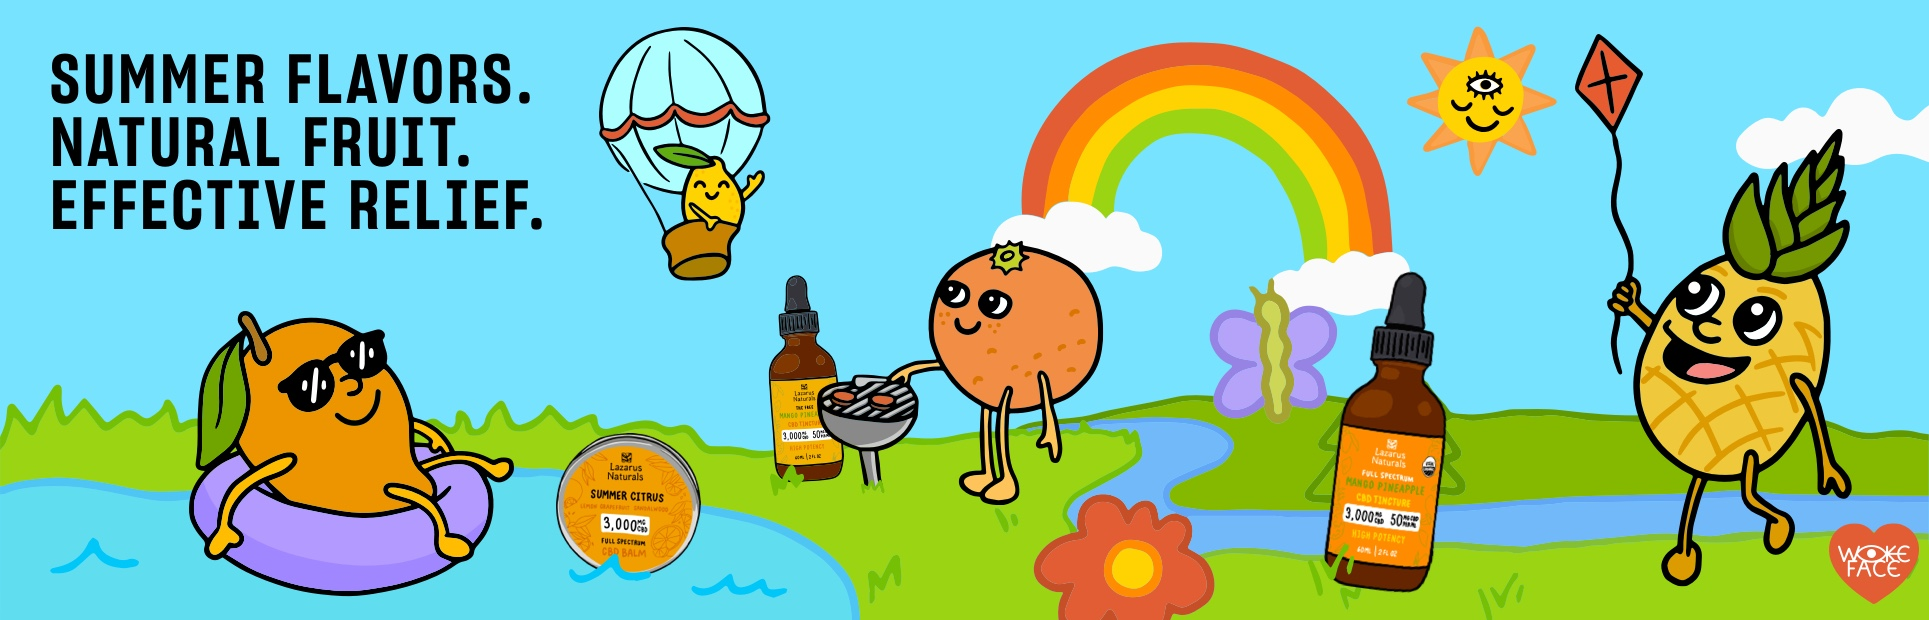 Summer flavors. Natural fruit. Effective relief. Lazarus Naturals CBD summer collection. Illustration of fruits having a summer picnic.